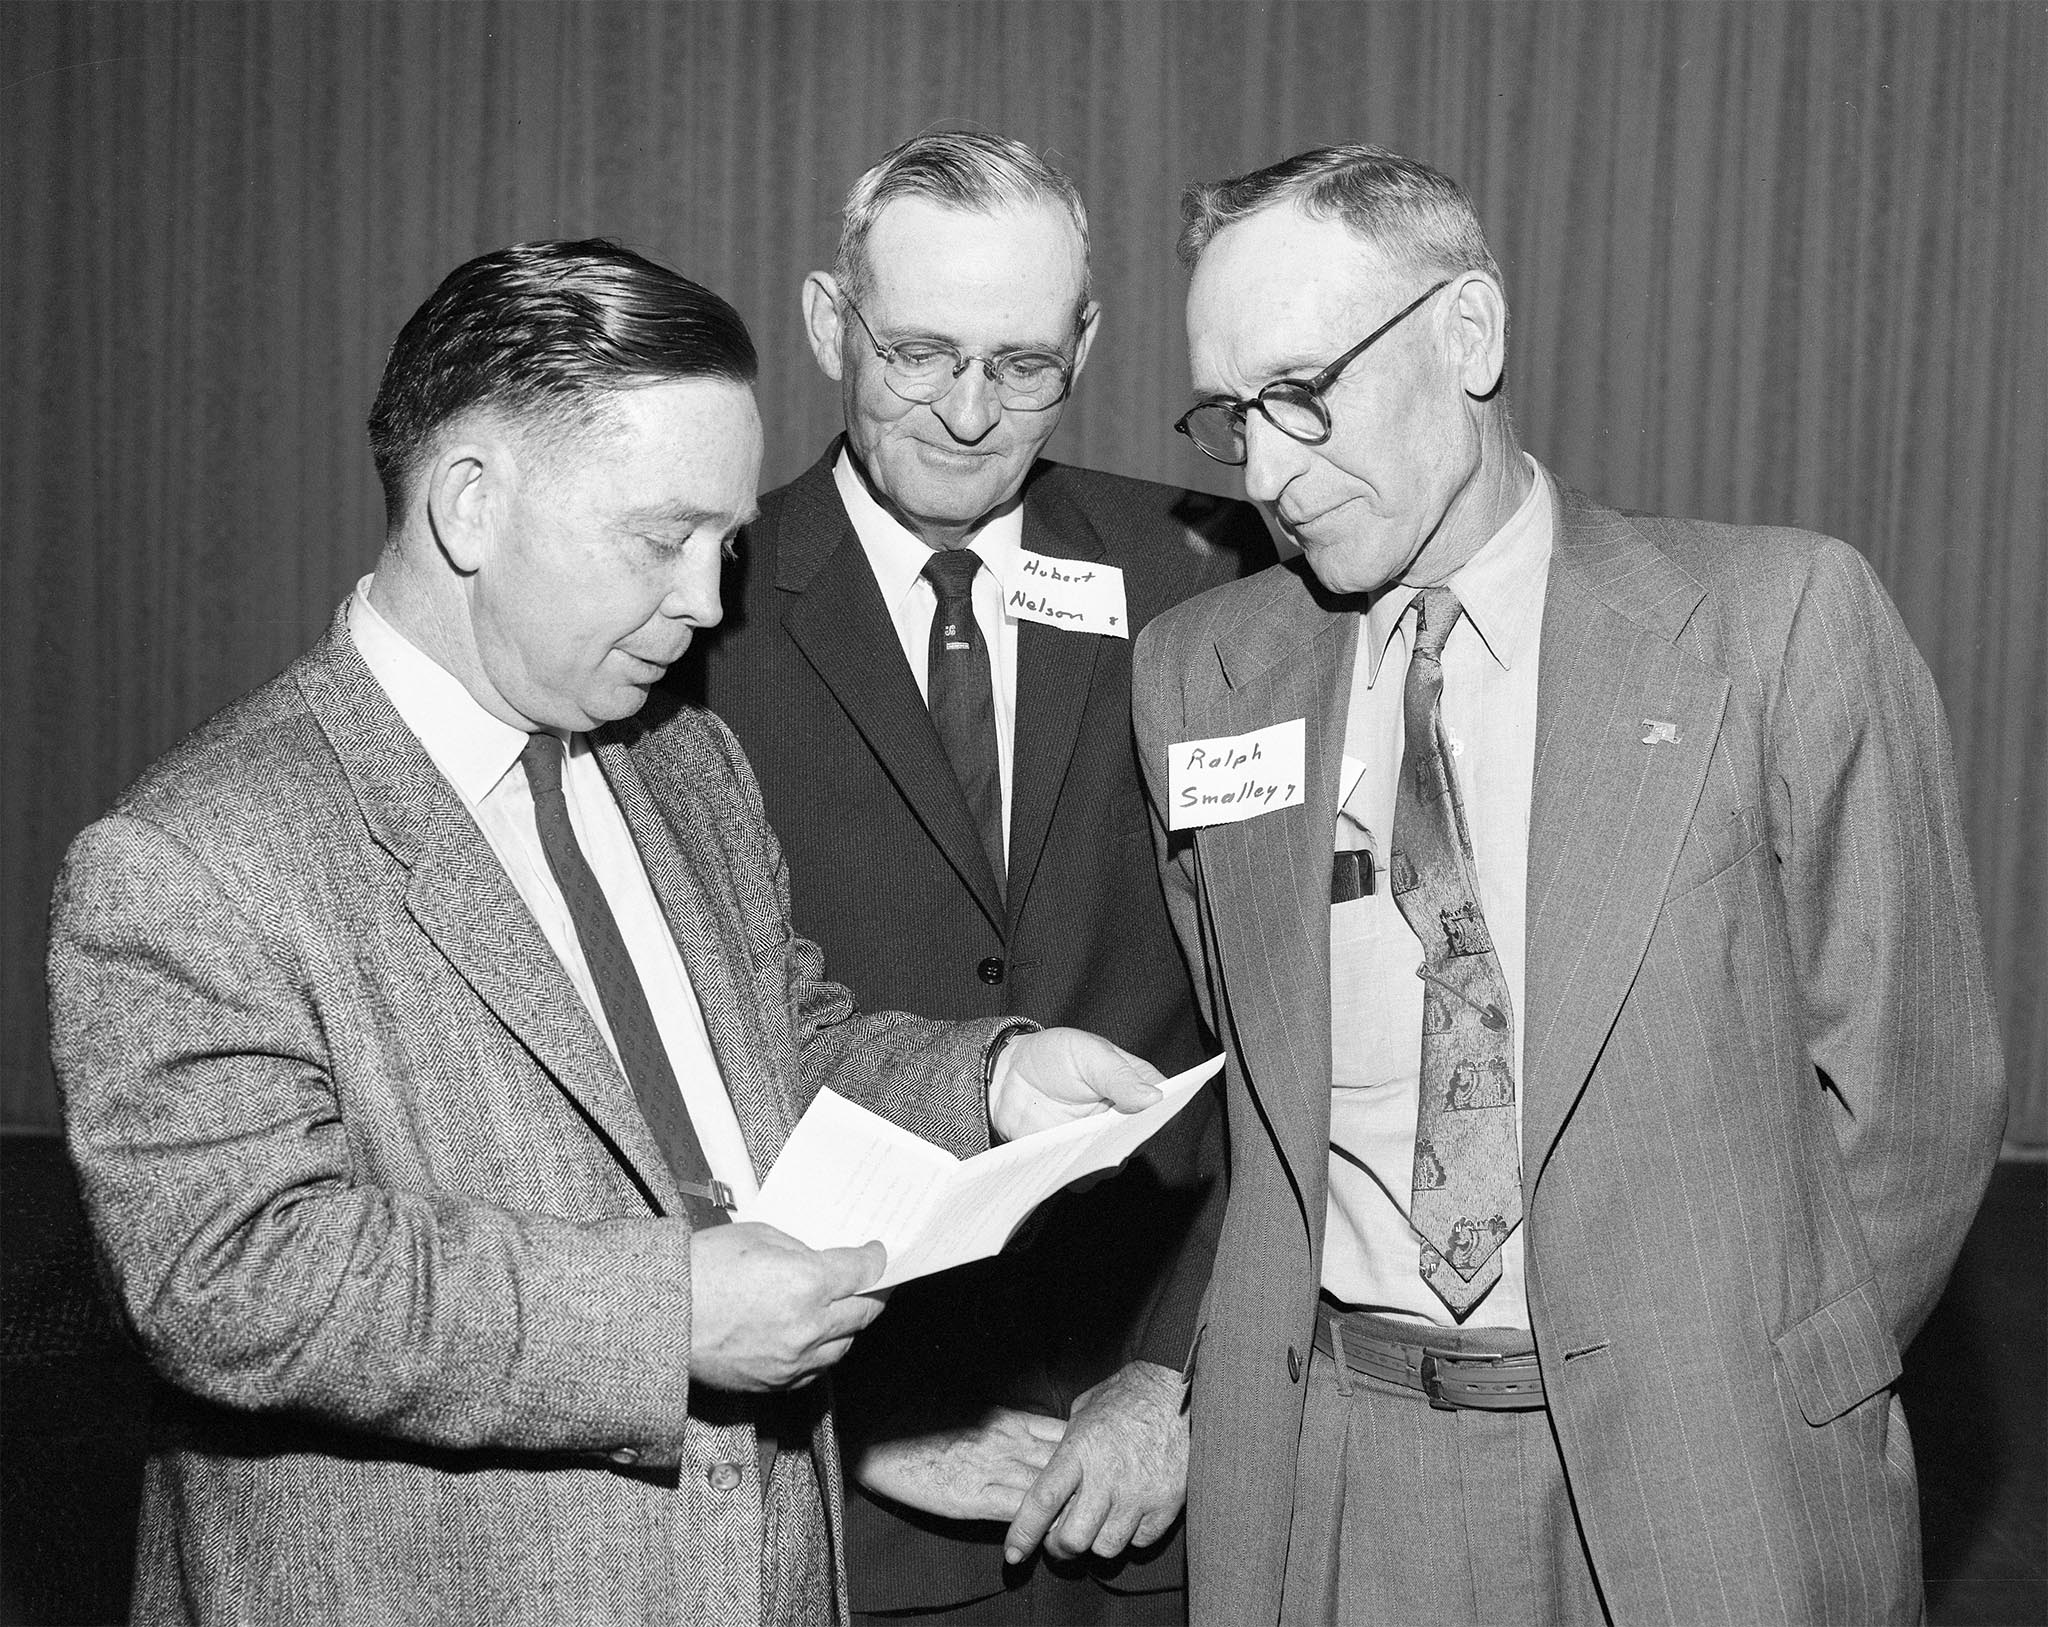 Congressman Carl Albert (left) met with representatives of county Farm Bureaus in his district at a Farm-Bureau-sponsored get-together in McAlester in 1959. Albert is shown here with McCurtain County's Hubert Nelson (center) and Pittsburg County's Ralph Smalley.